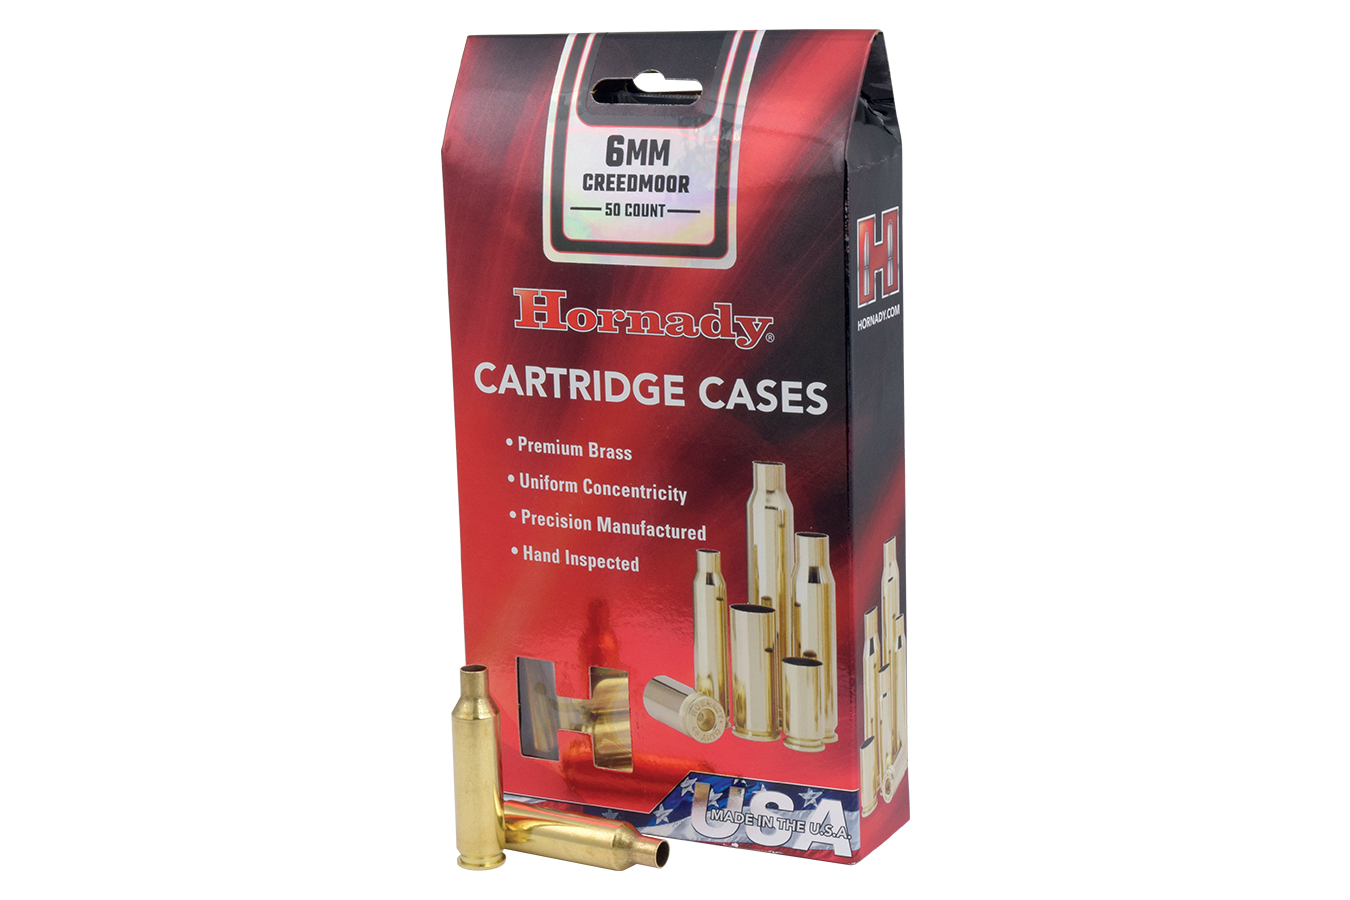 6MM CREEDMOOR UNPRIMED CASES